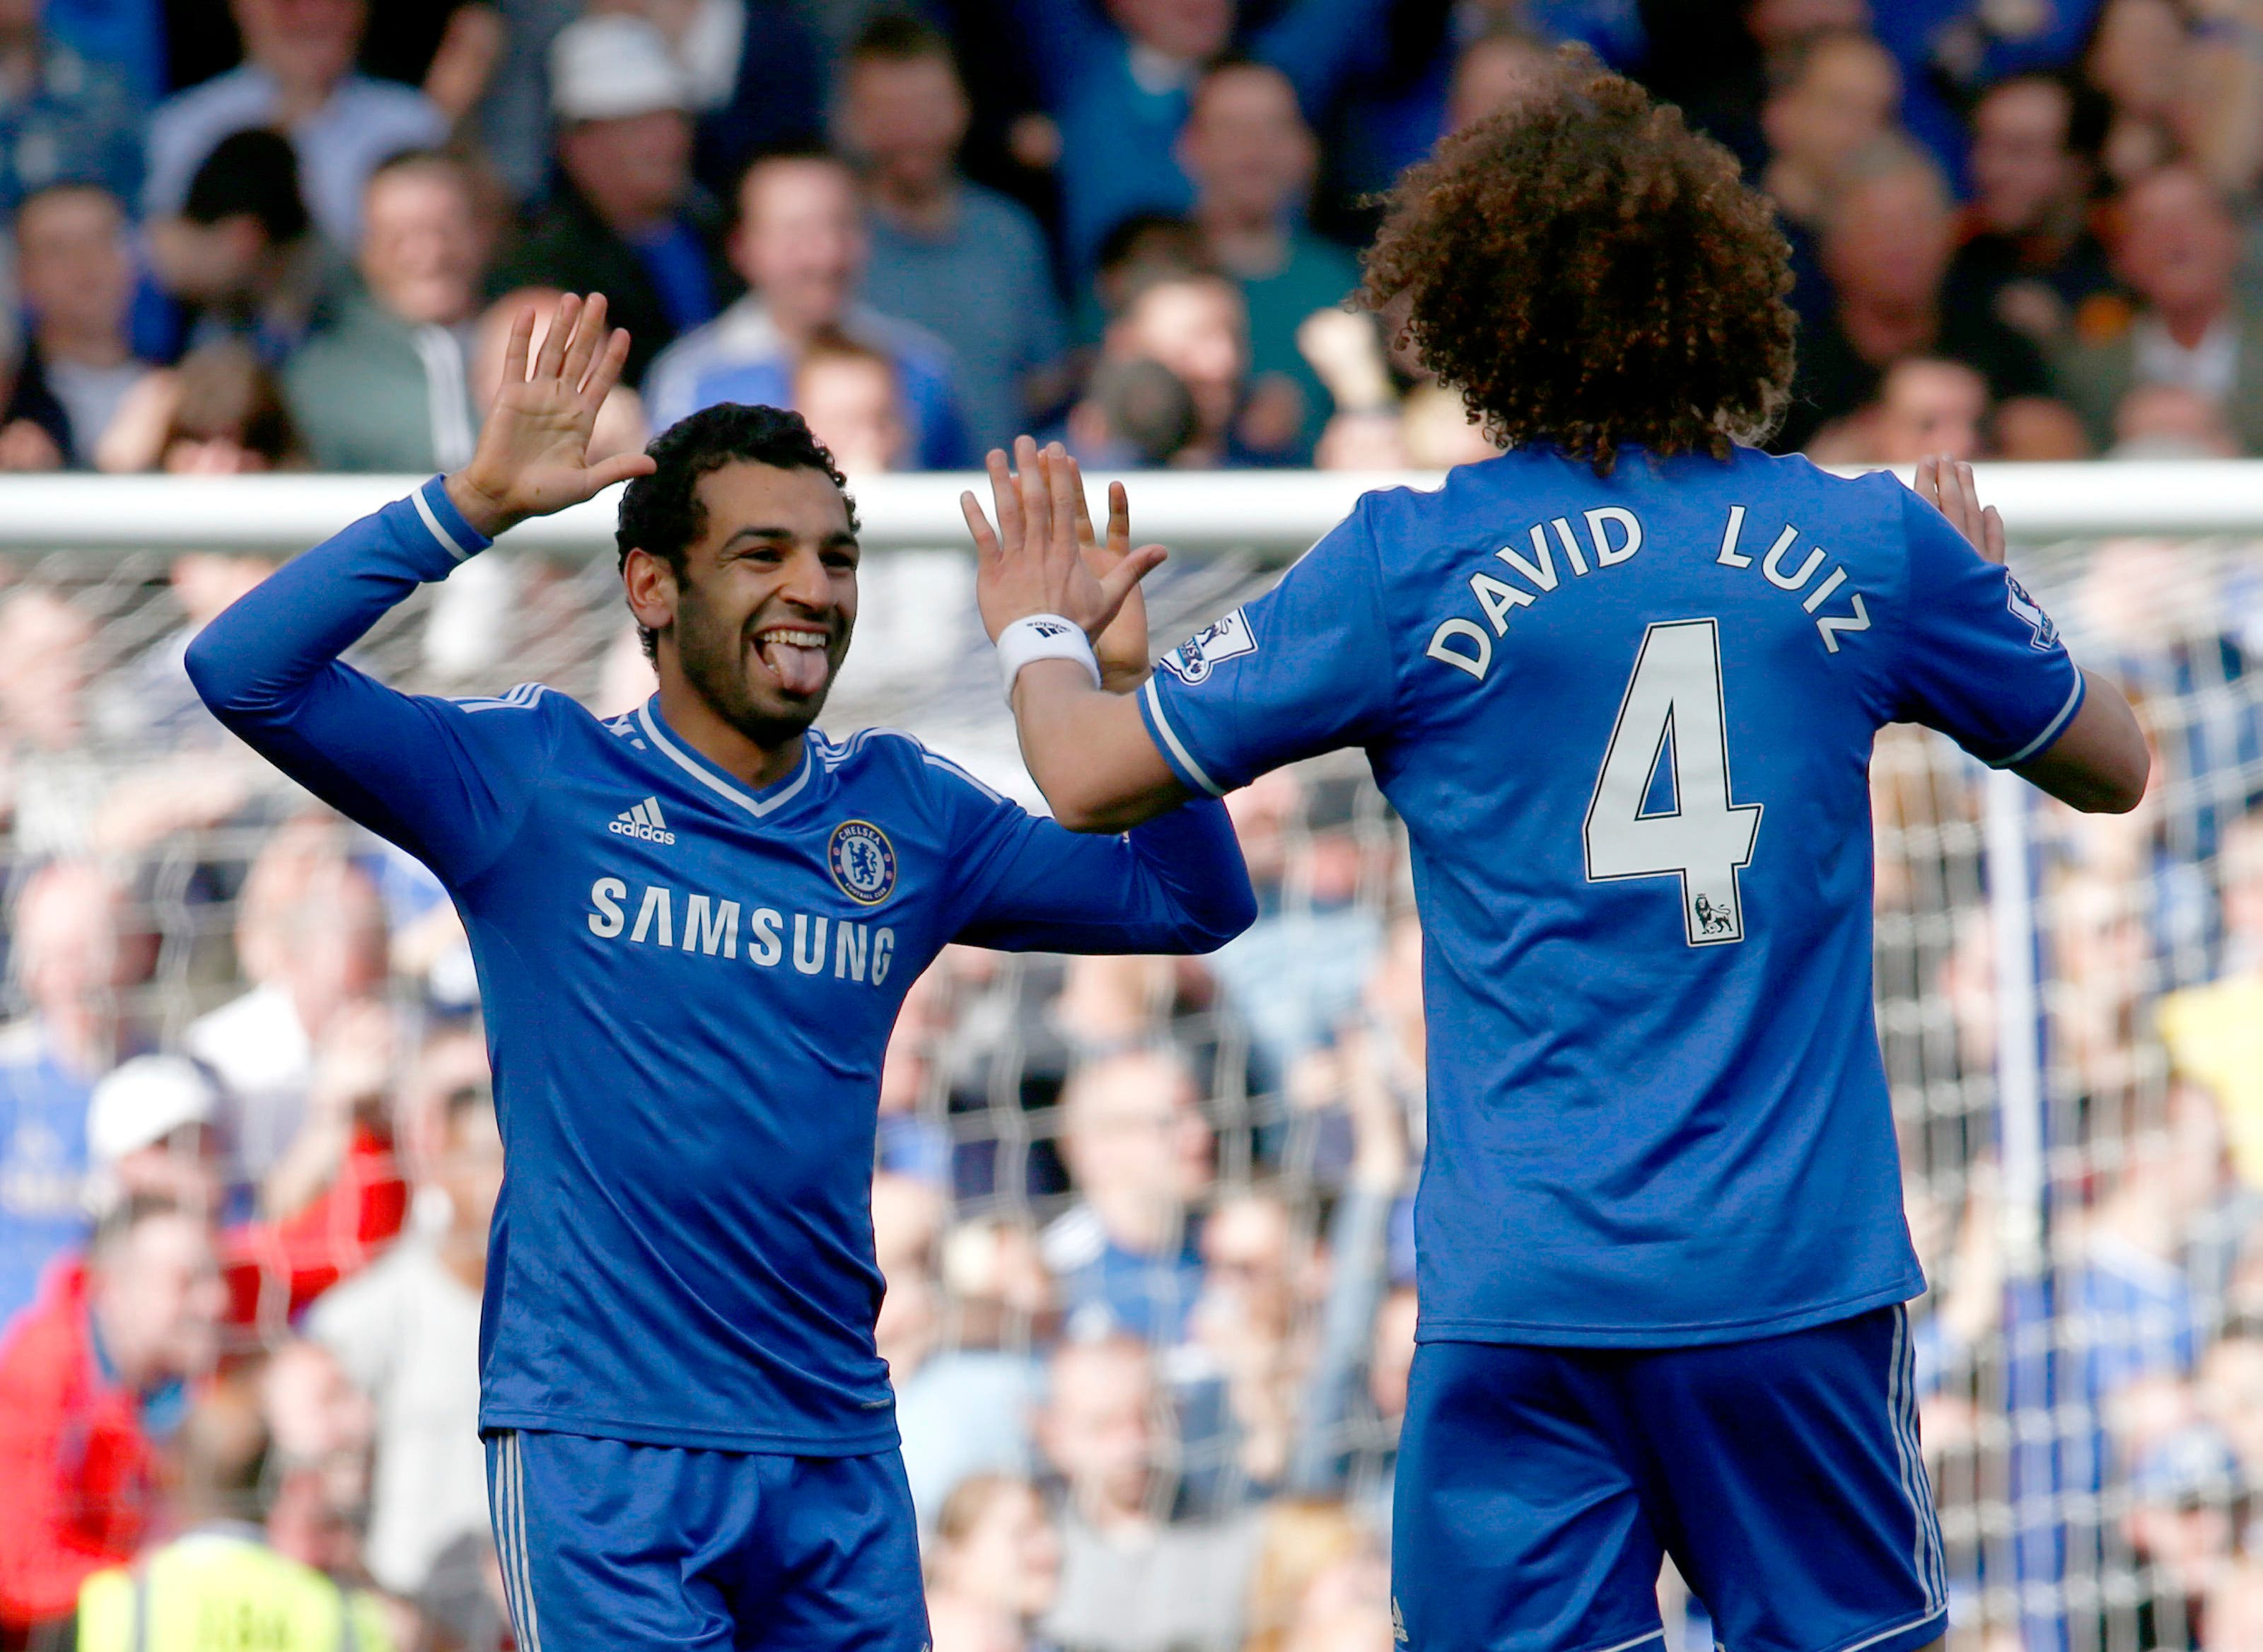 Chelsea's Mohamed Salah (L) celebrates with team mate David Luiz after scoring a goal against Arsenal during their English Premier League soccer match at Stamford Bridge in London, March 22, 2014. (Reuters)